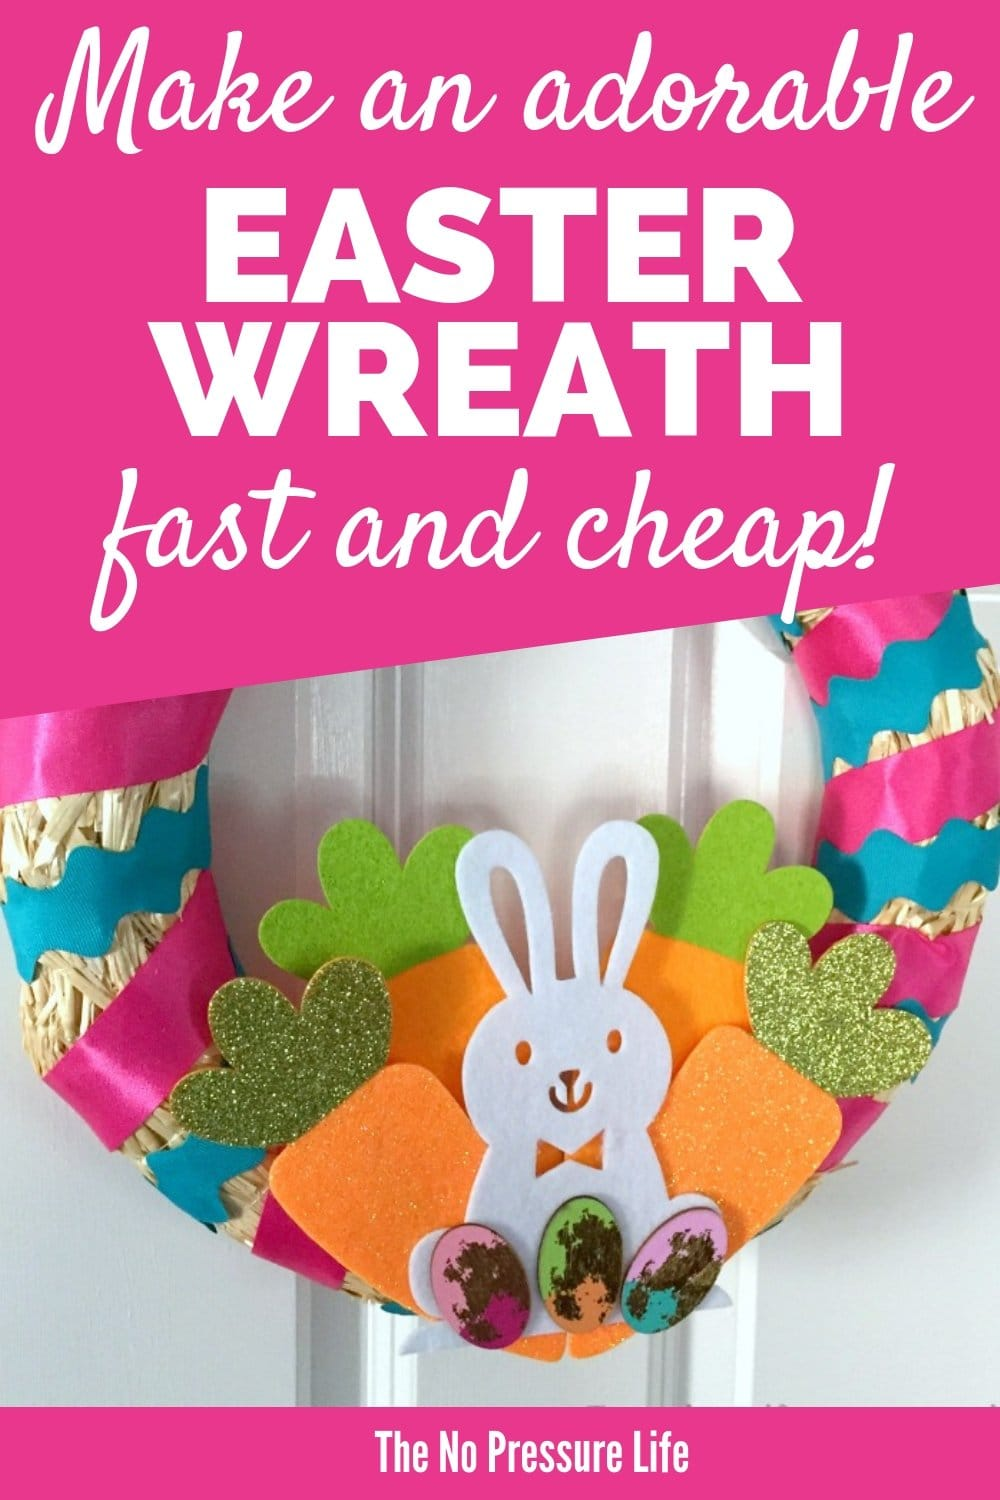 DIY Easter Wreath that's easy and cute with bunny and carrots